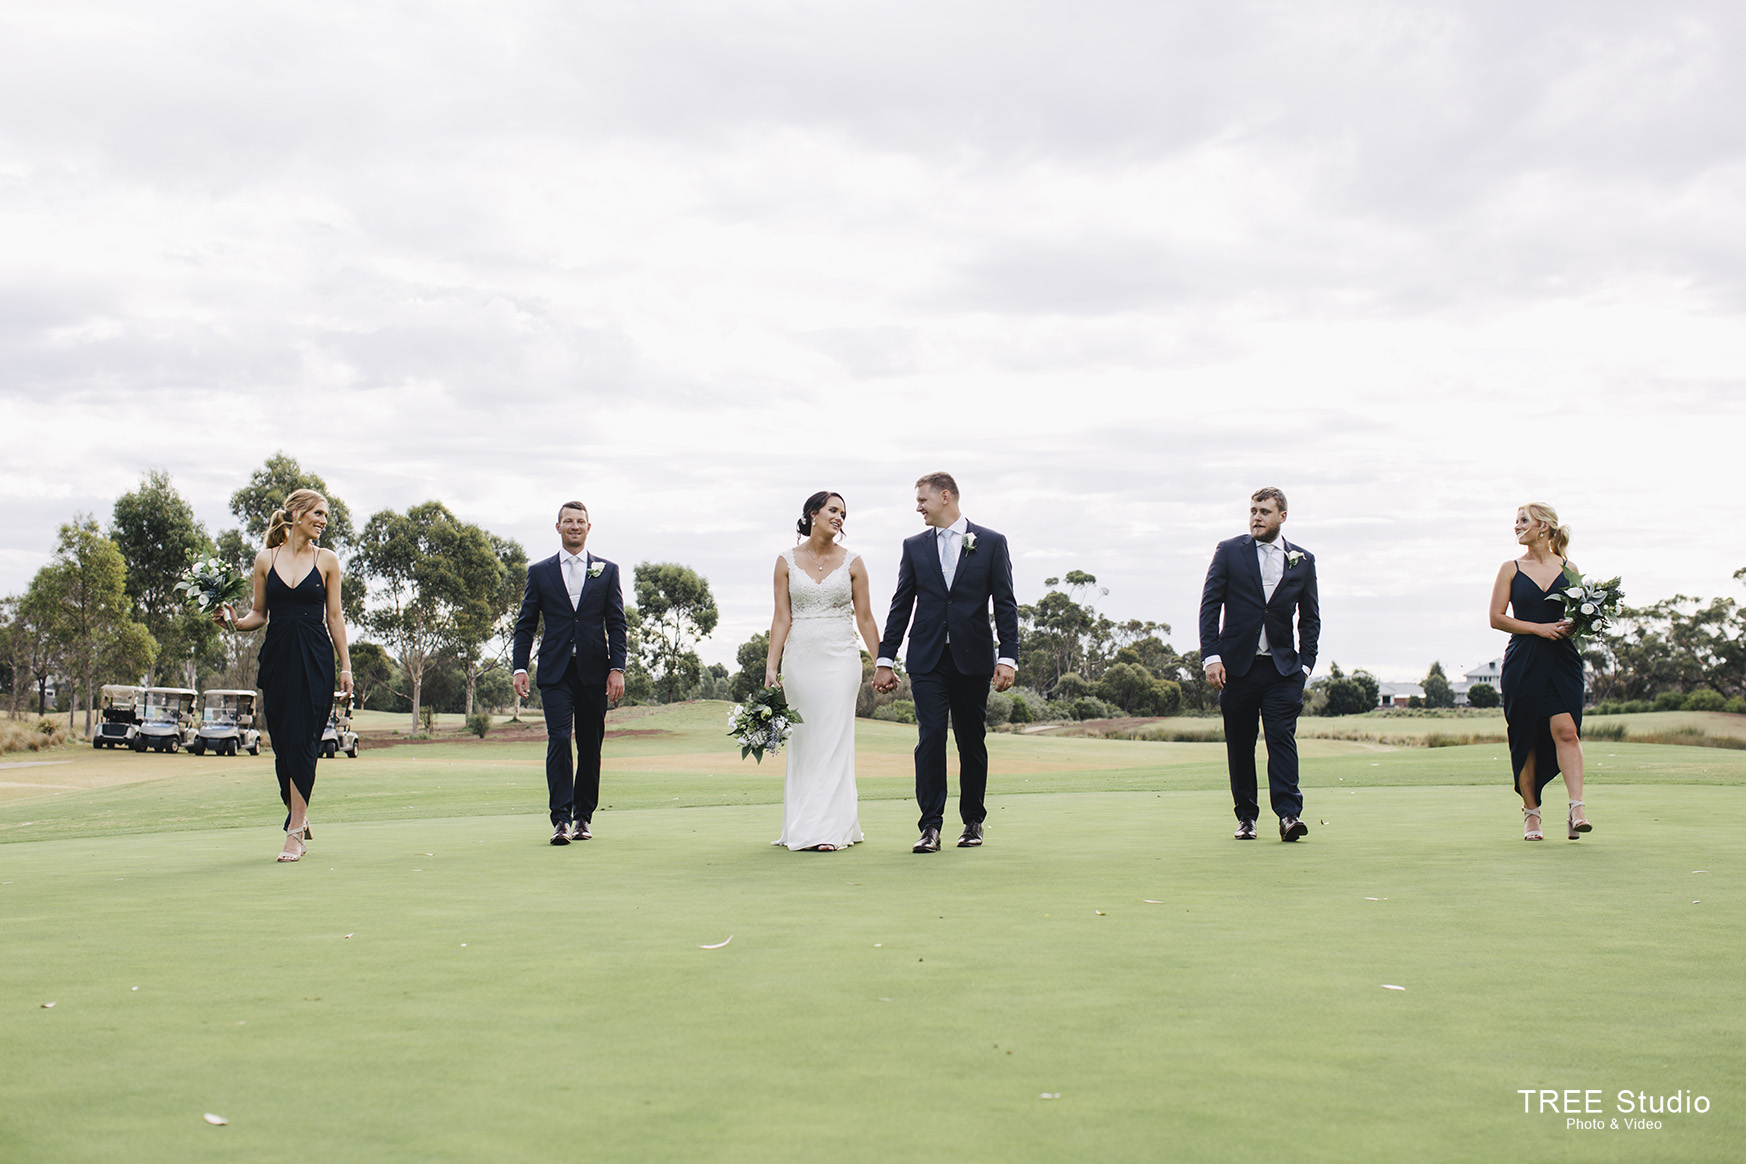 Melbourne Wedding Photography- what you should know to hire the best one